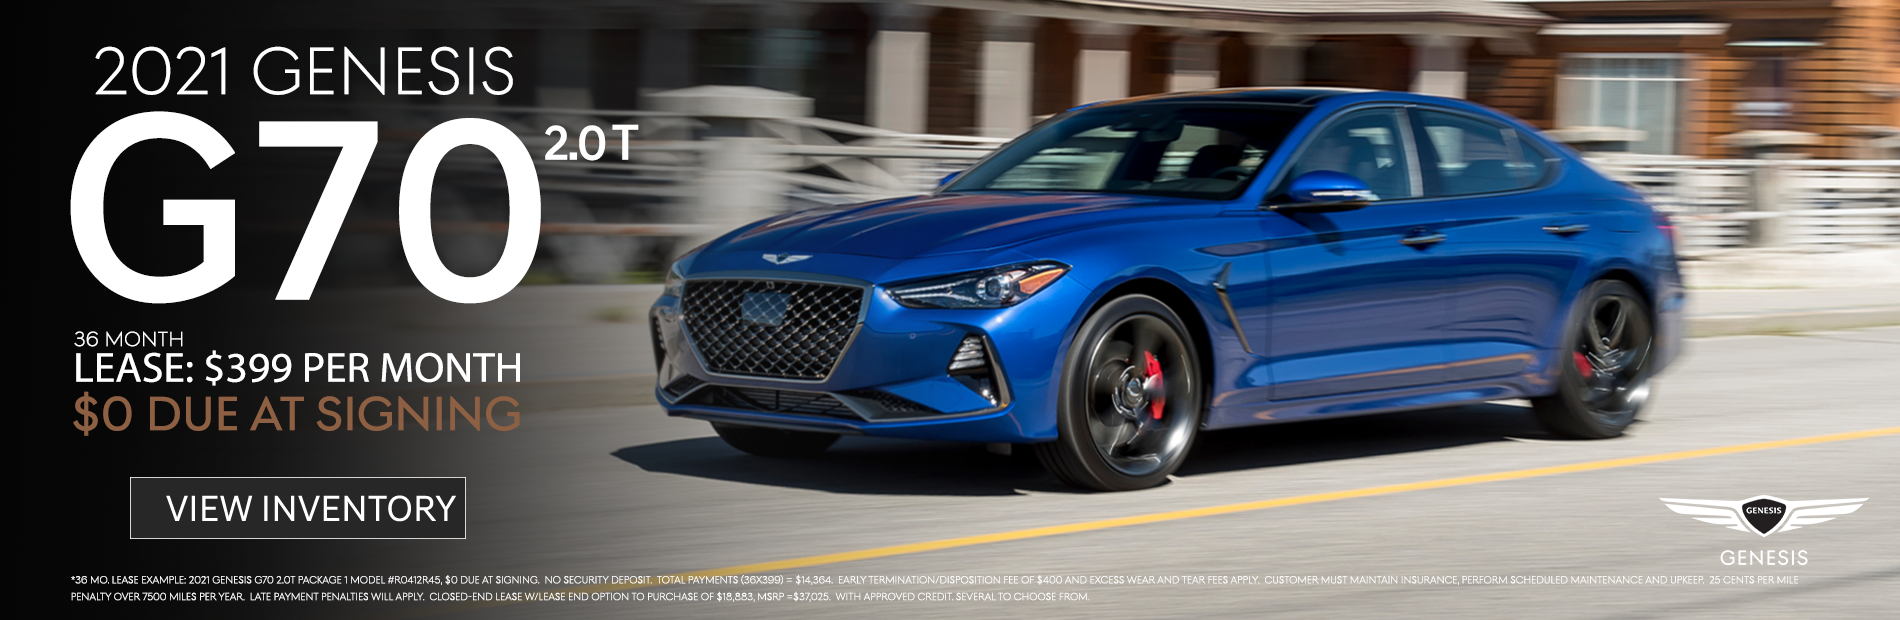 2021 G70 $399 Lease